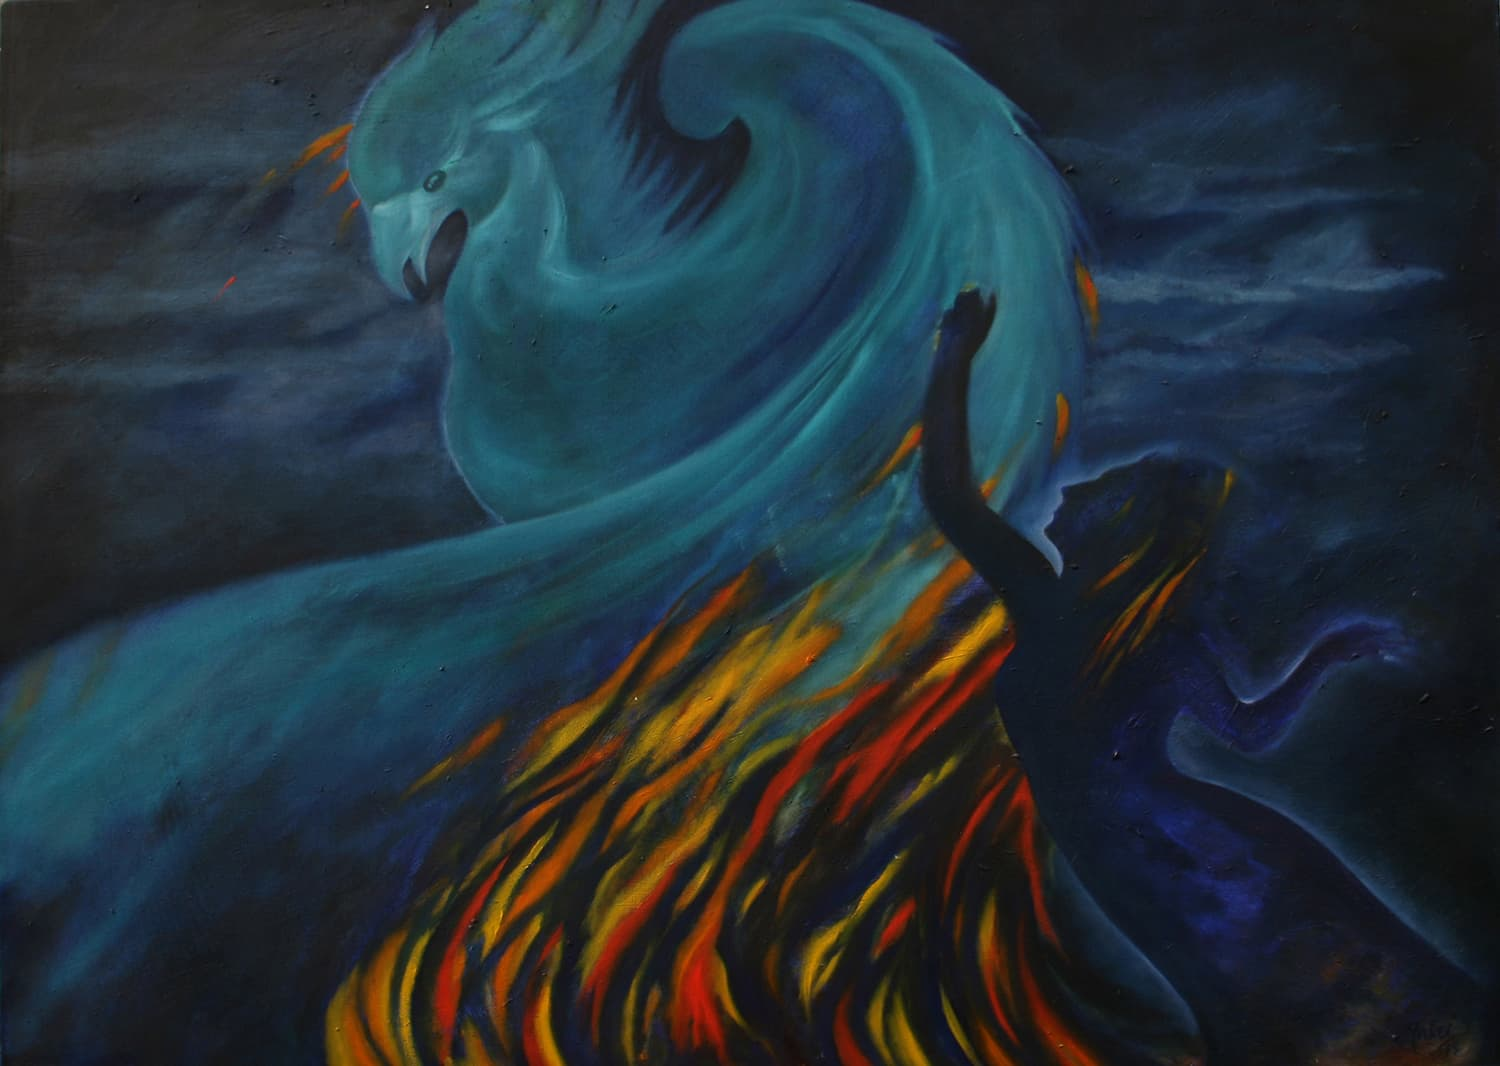 Mahvash Masood, 'Rising from the Ashes', Oil on Canvas, 48 in x 36 in.